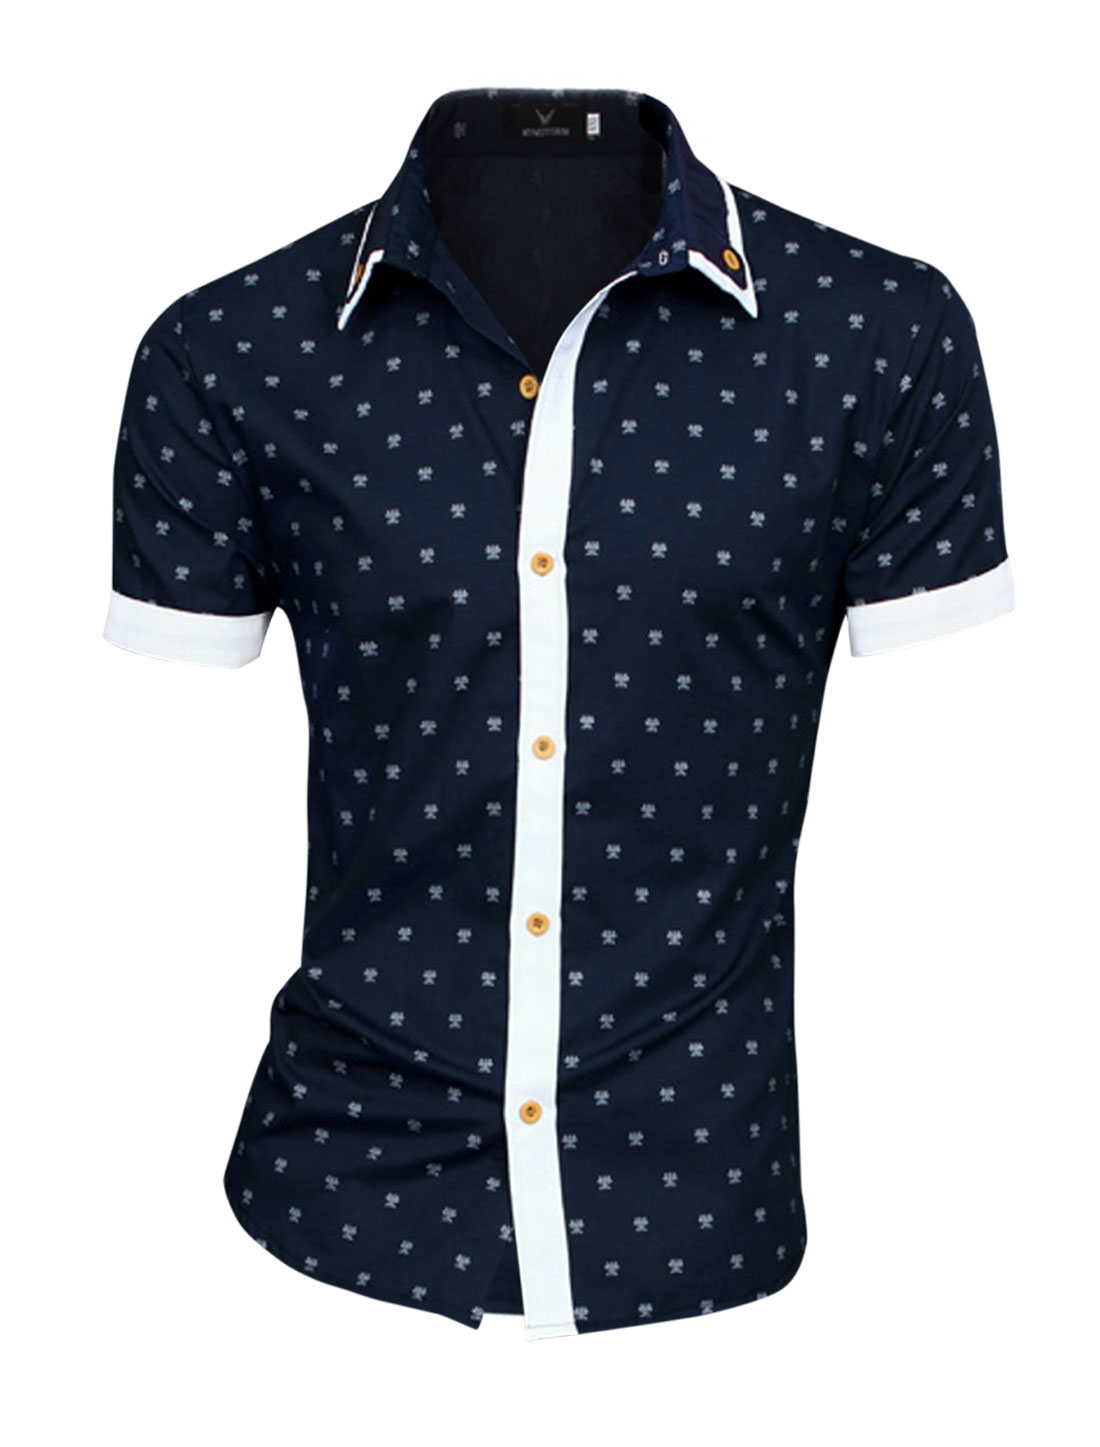 Men Short Sleeve Beetle Pattern NEW Top Shirt Navy Blue M